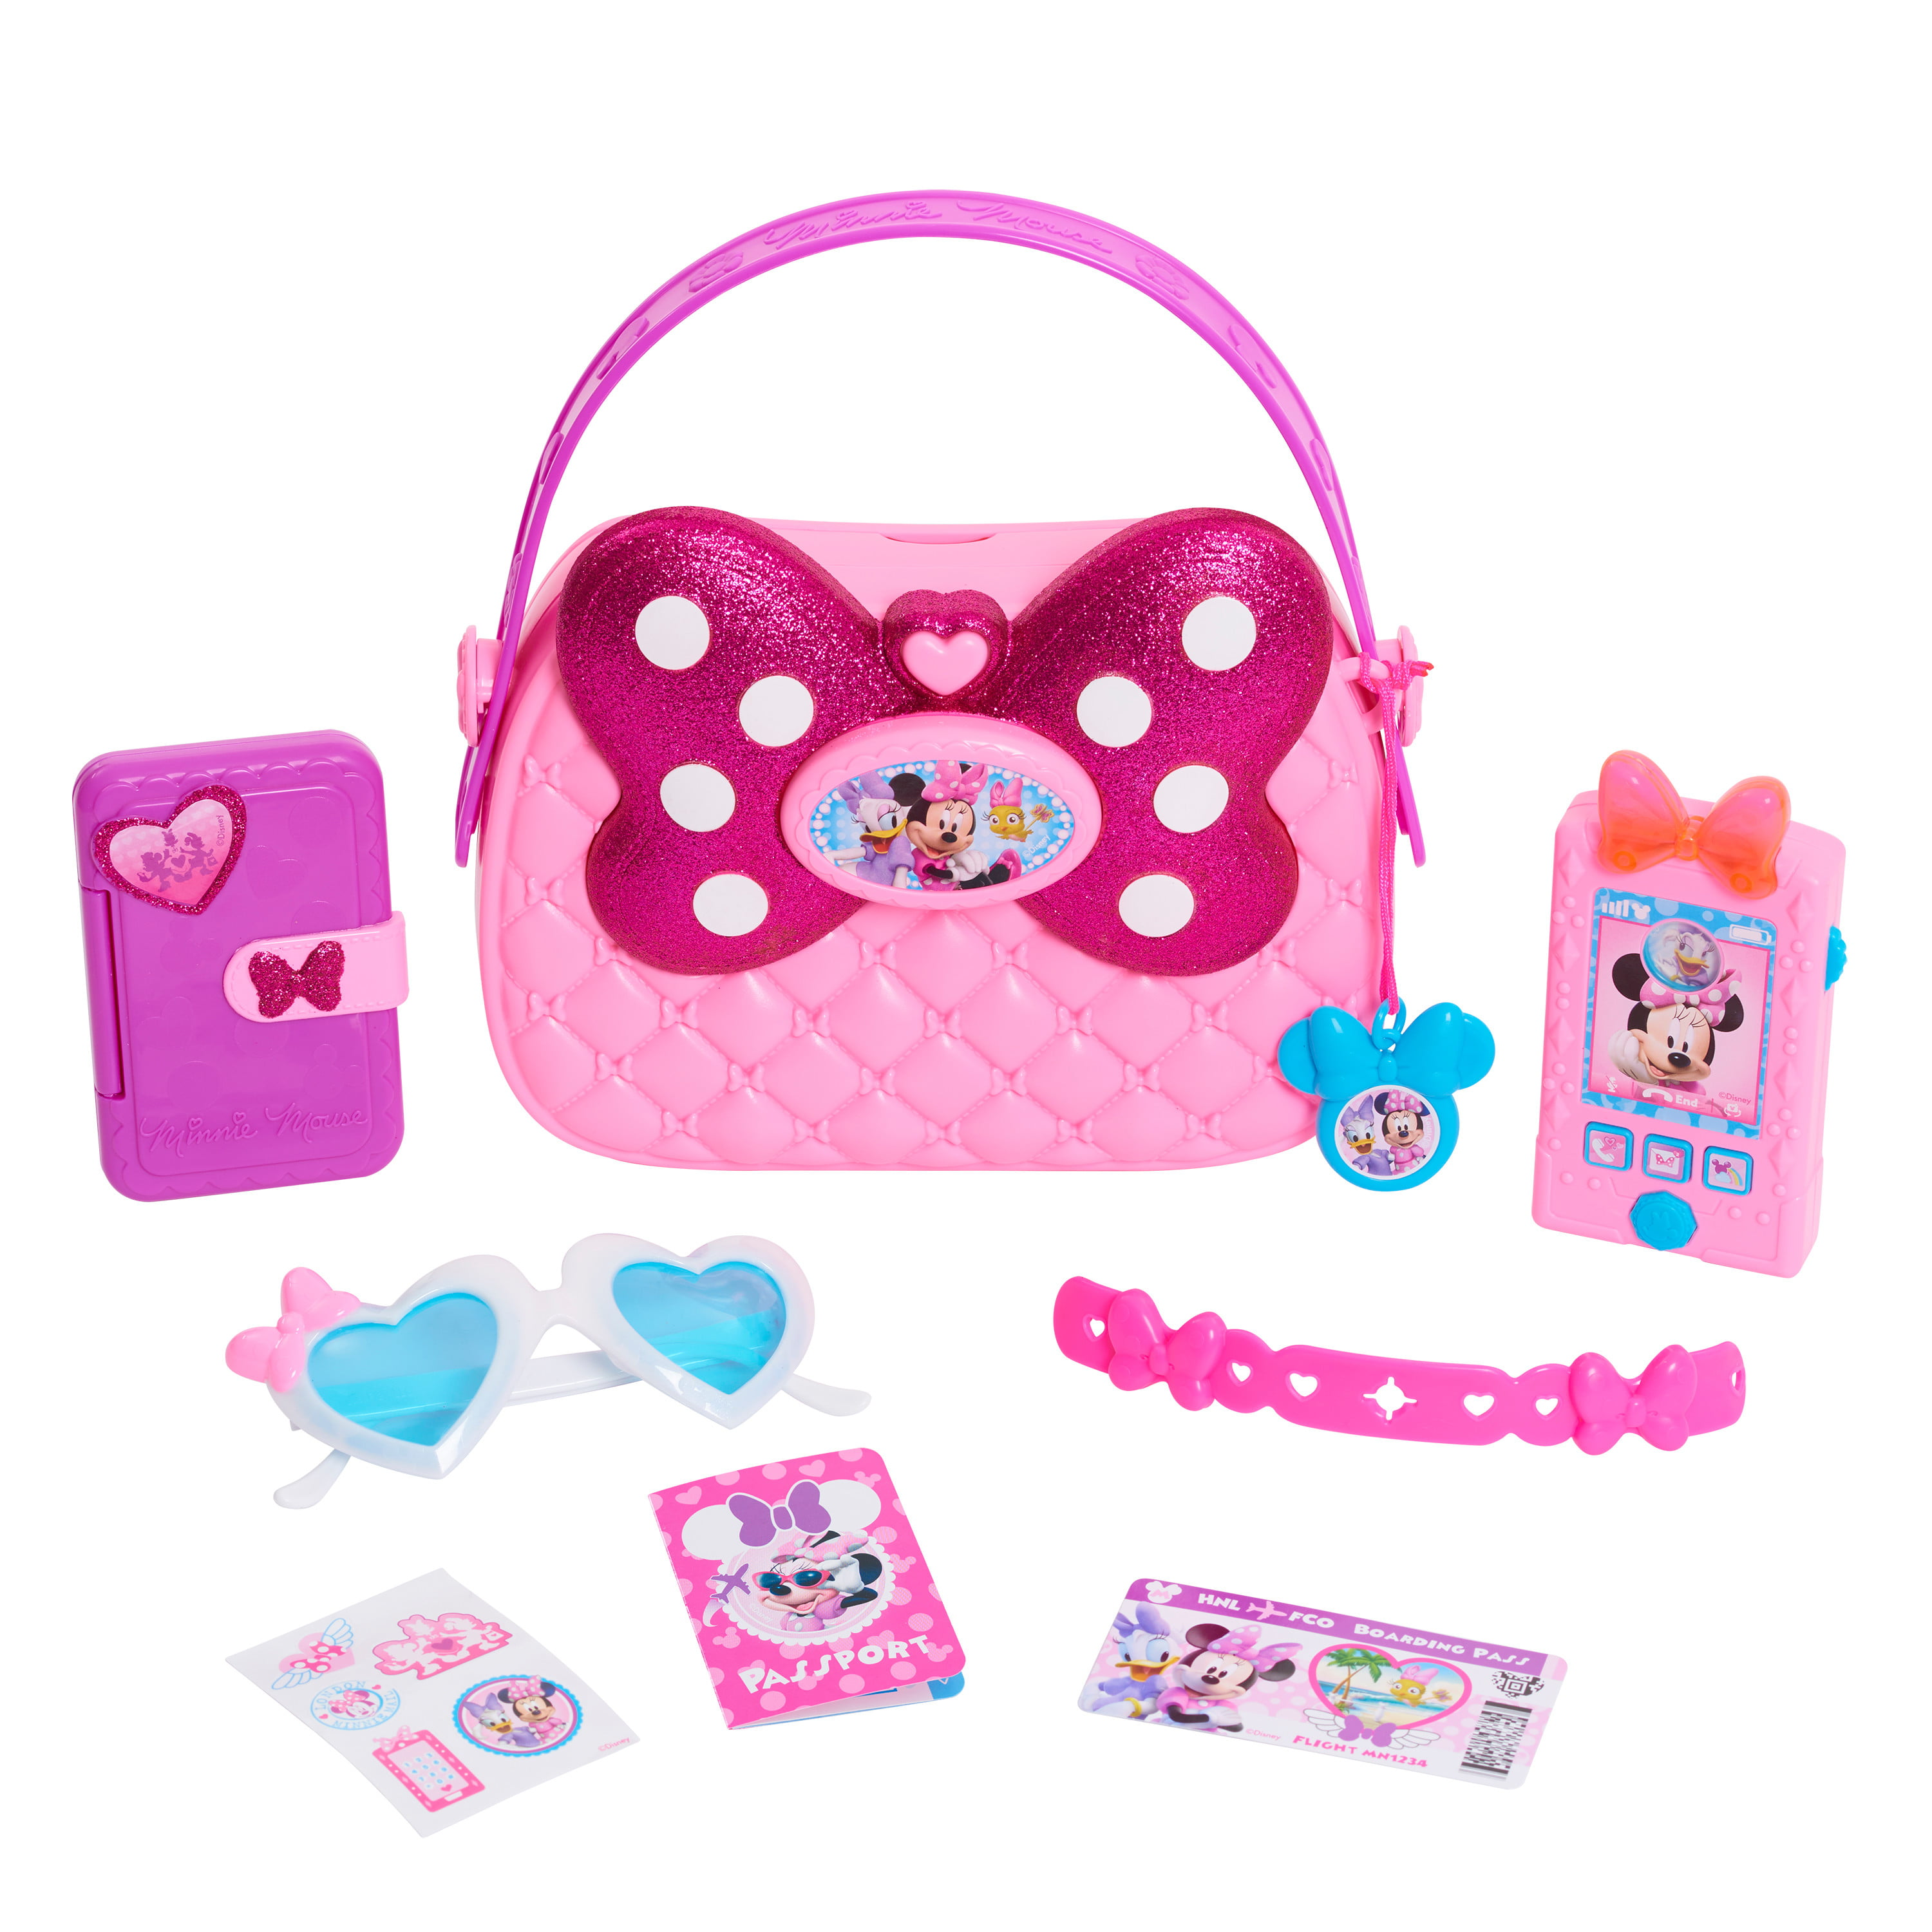 Disney Junior Minnie Happy Helpers Bag Set, 9 Piece Pretend Play Purse with Lights and Sounds Cell Phone, Sunglasses, and Accessories, By Just Play